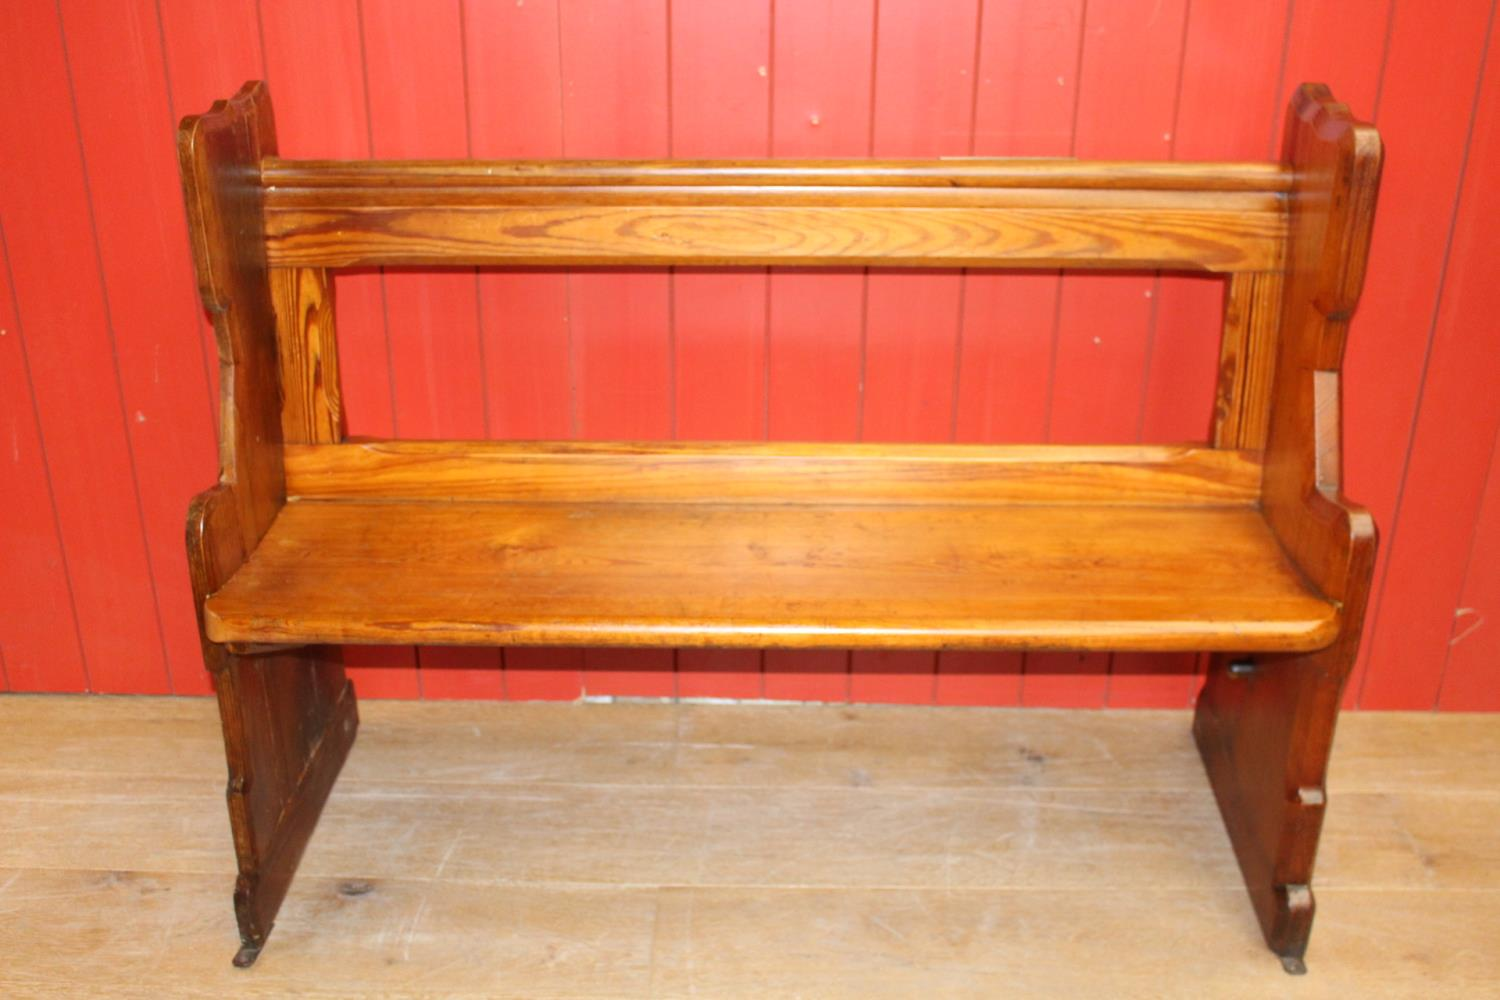 19th C. pitch pine pew